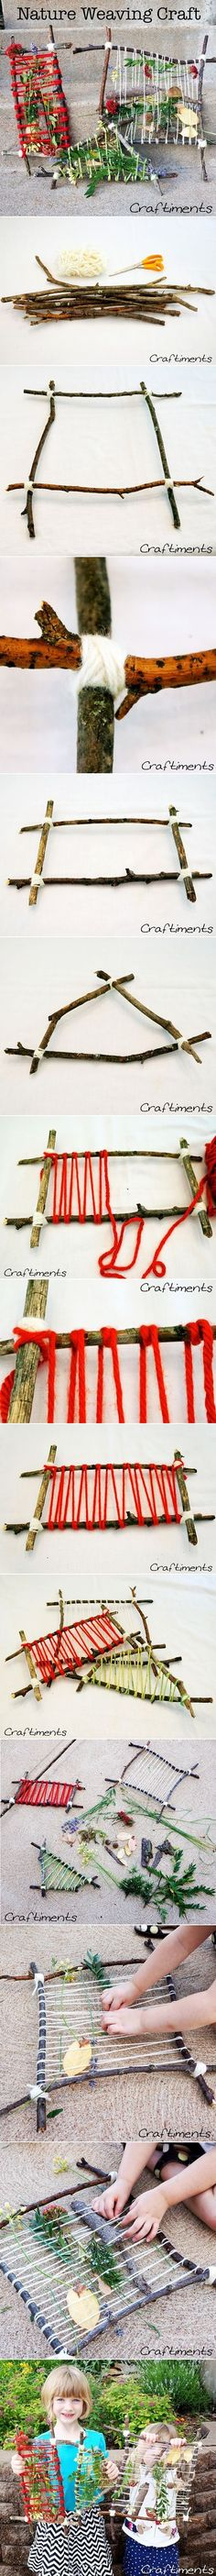 How to make DIY natural weaving loom, step by step tutorial / instructions: